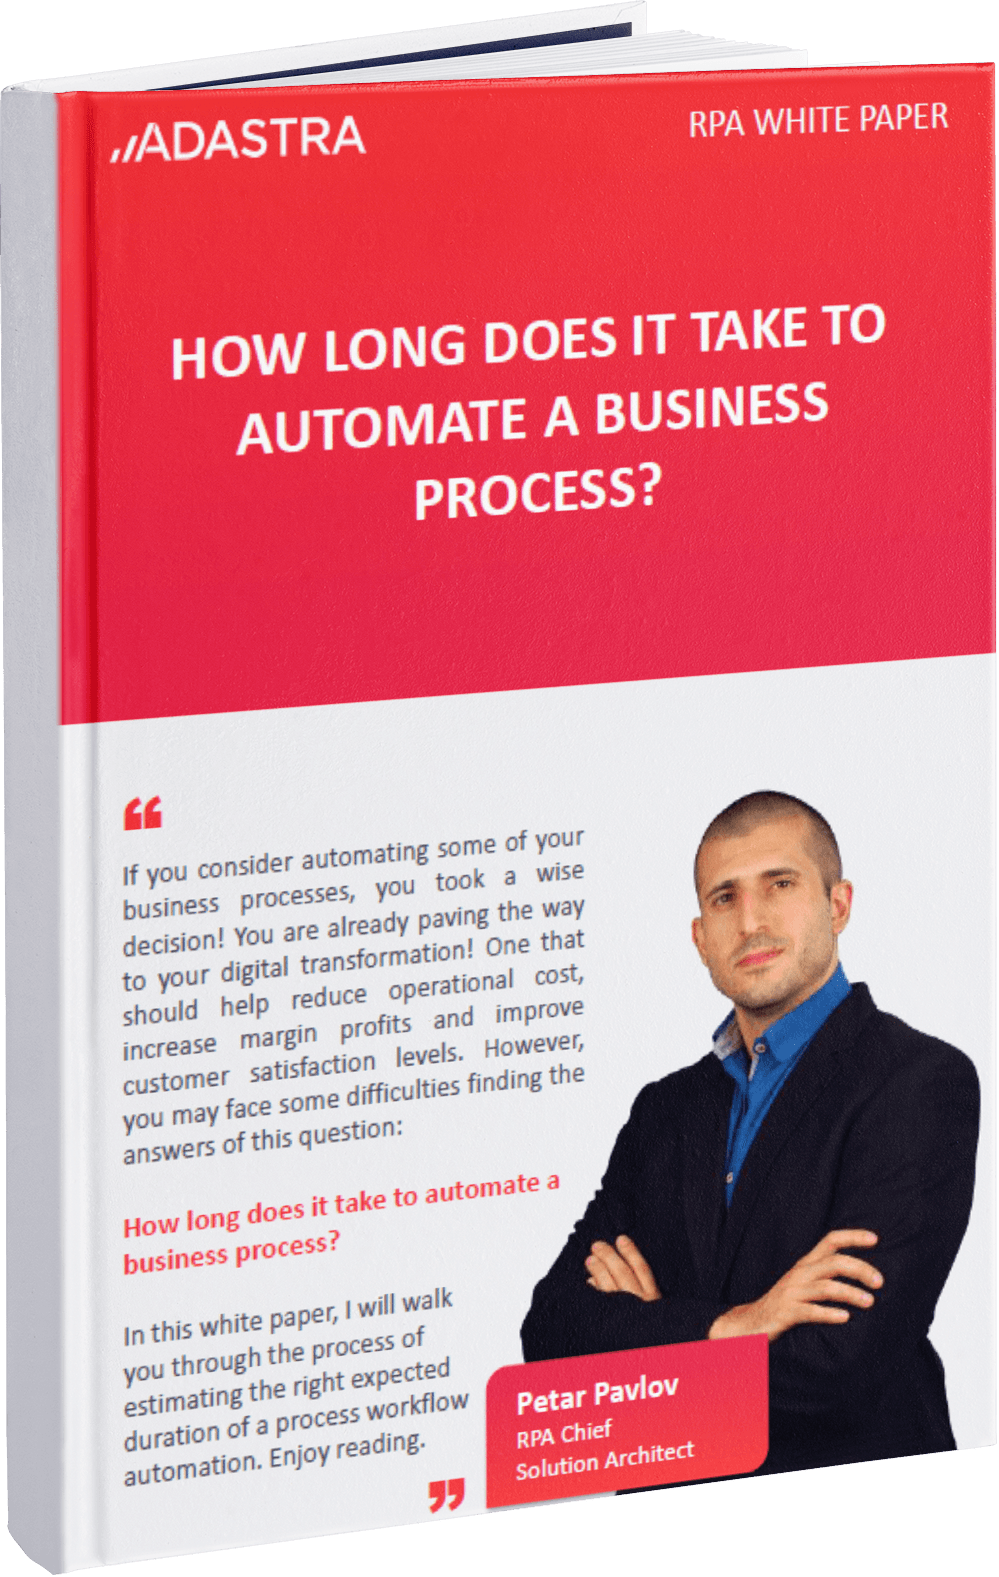 White paper cover - how long does it take to automate a business process?